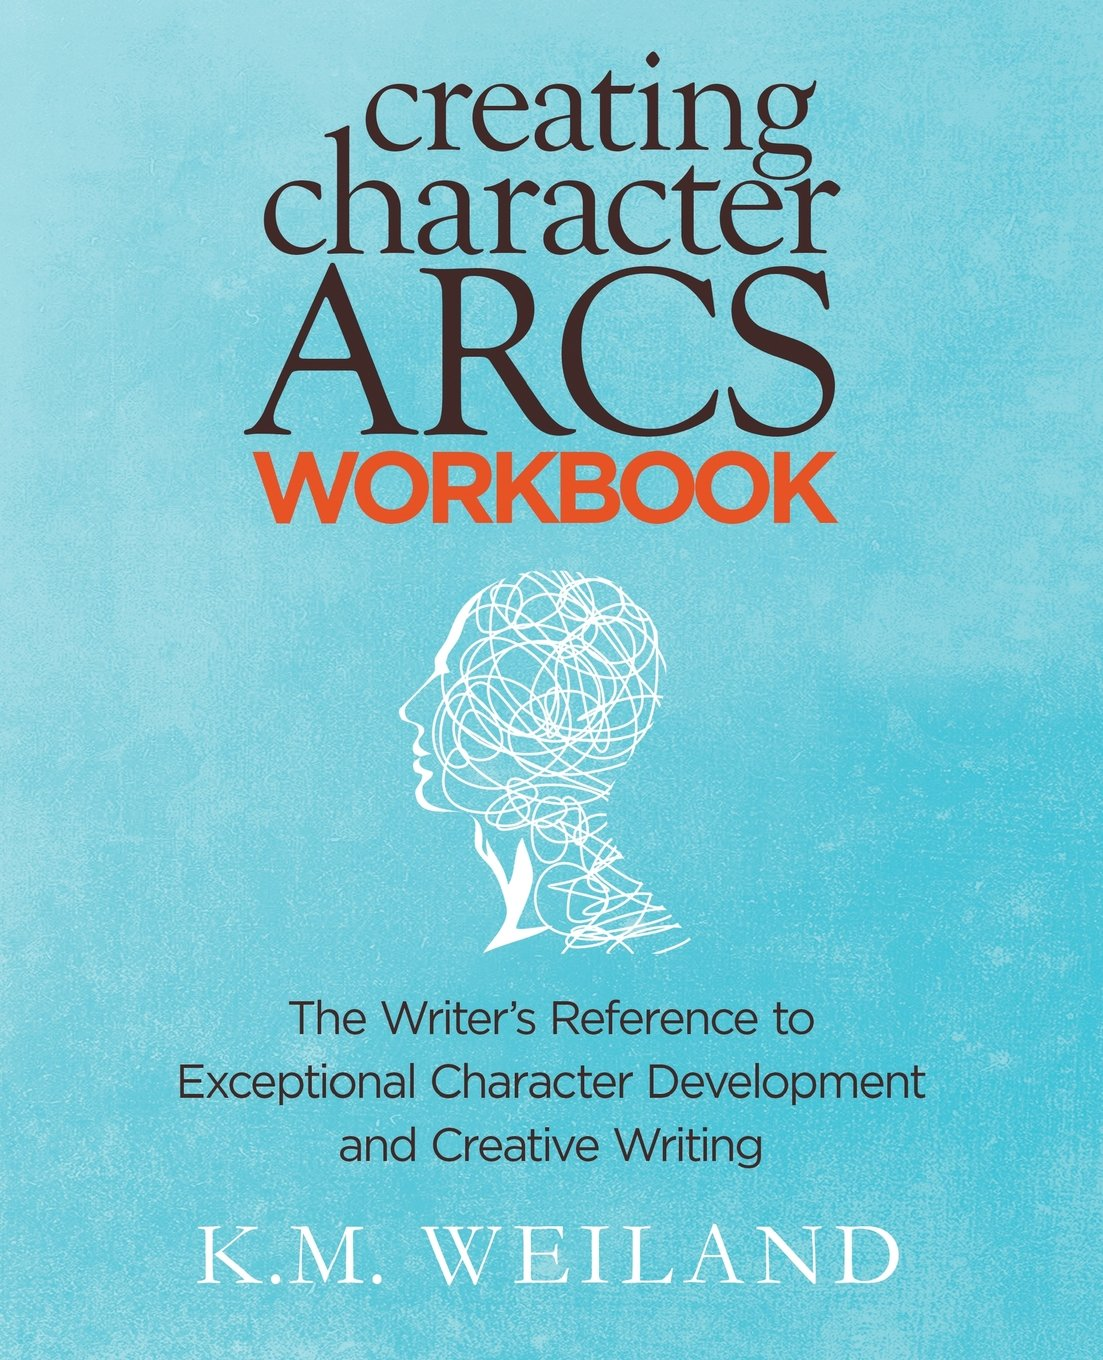 Creating Character Arcs Workbook: The Writer's Reference to Exceptional Character Development and Creative Writing (Anglais) Broché – 5 août 2017 K.M. Weiland PenForASword 194493605X Briefe